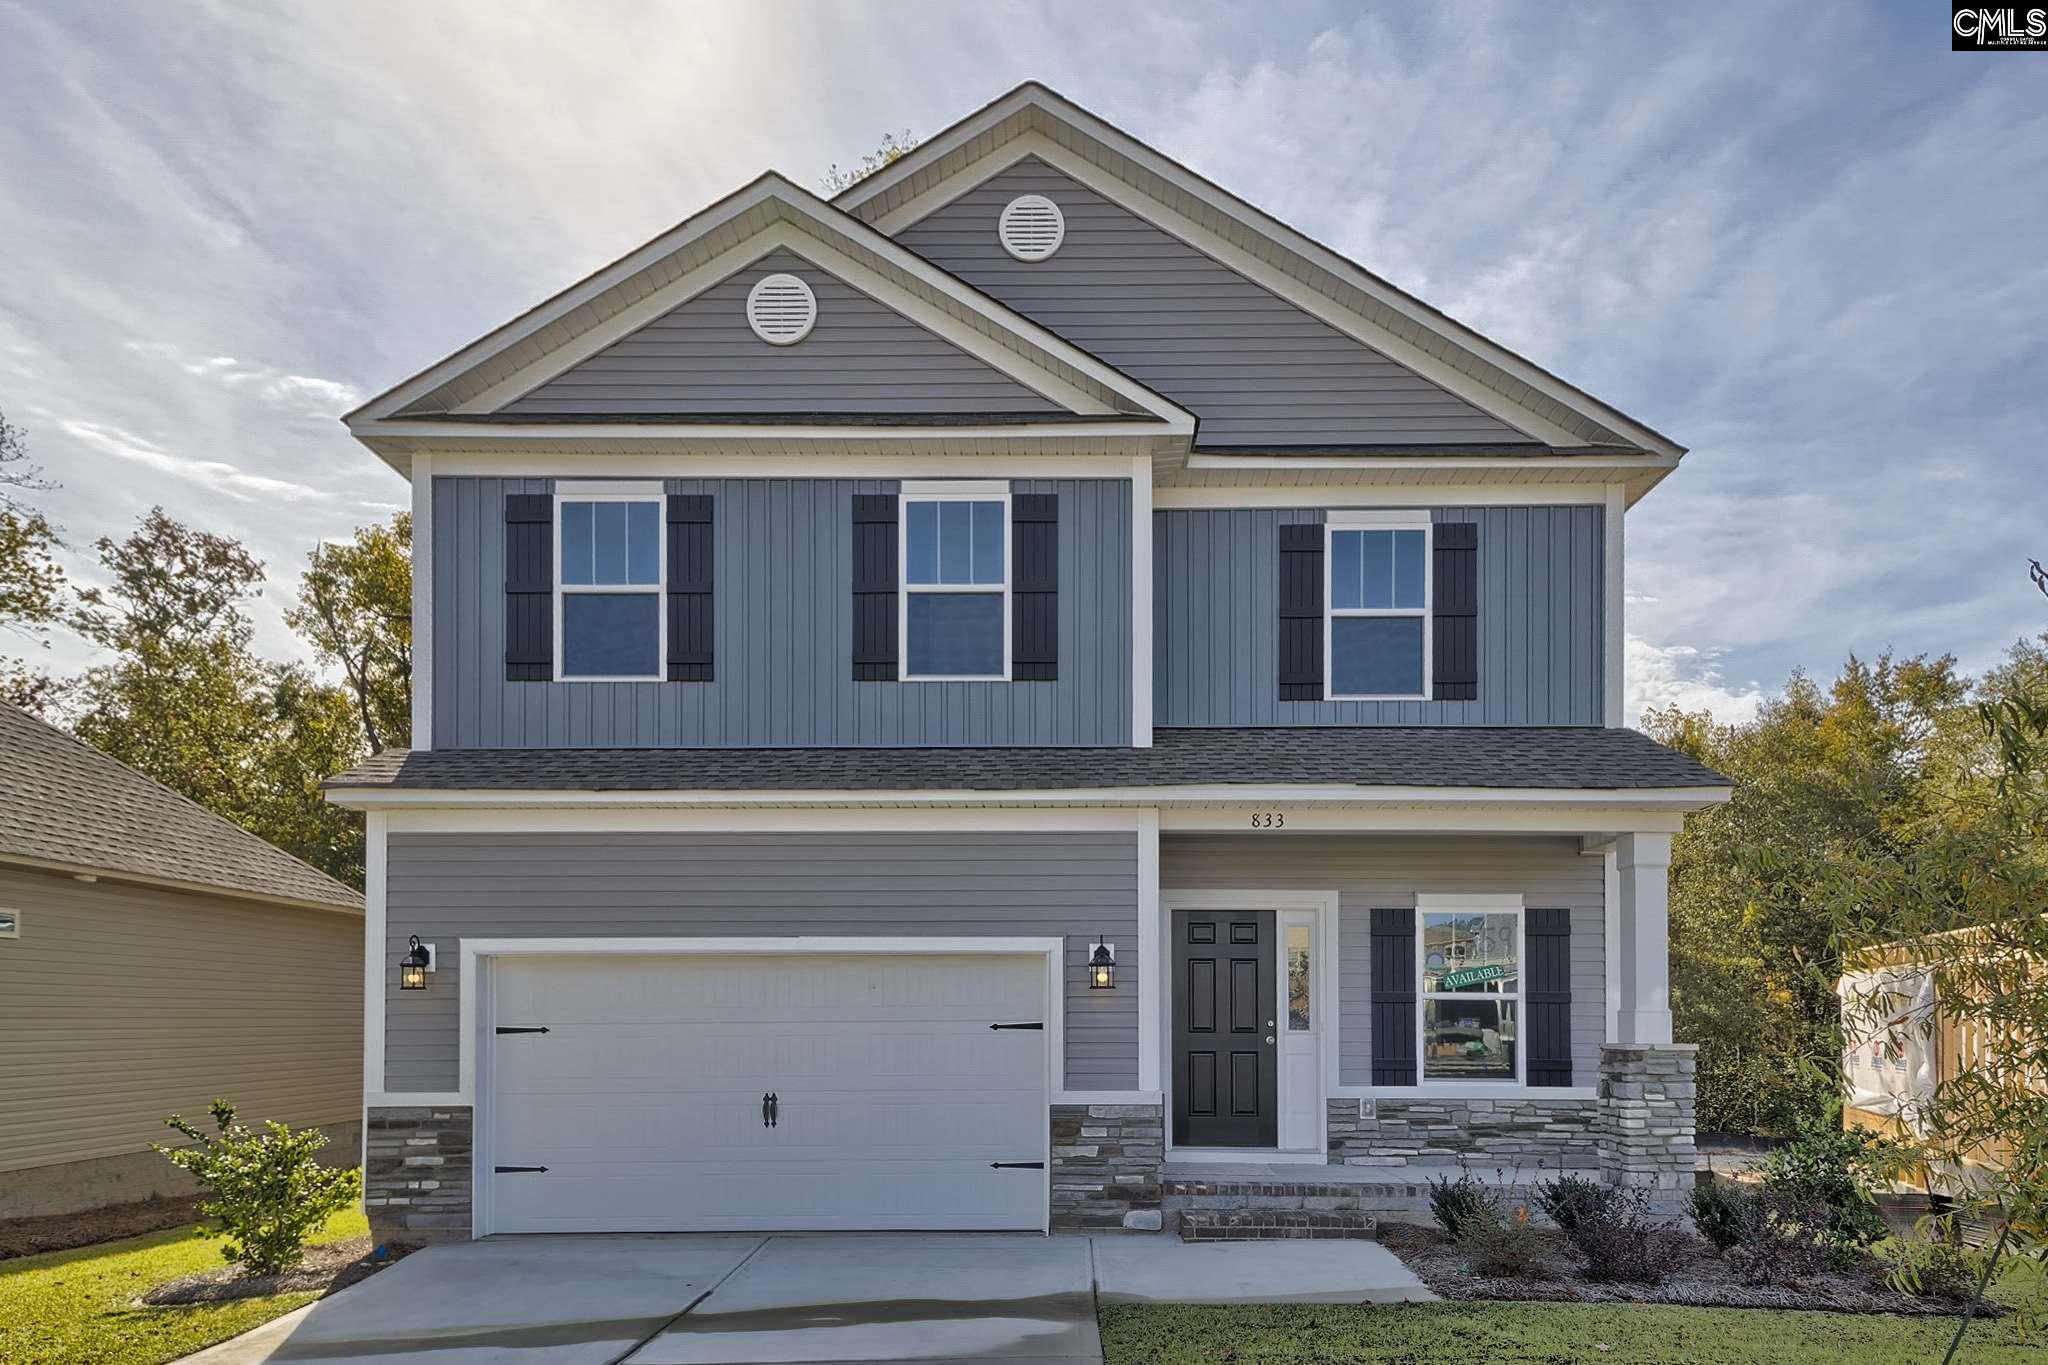 833 Red Solstice (lot 159) Lexington, SC 29073